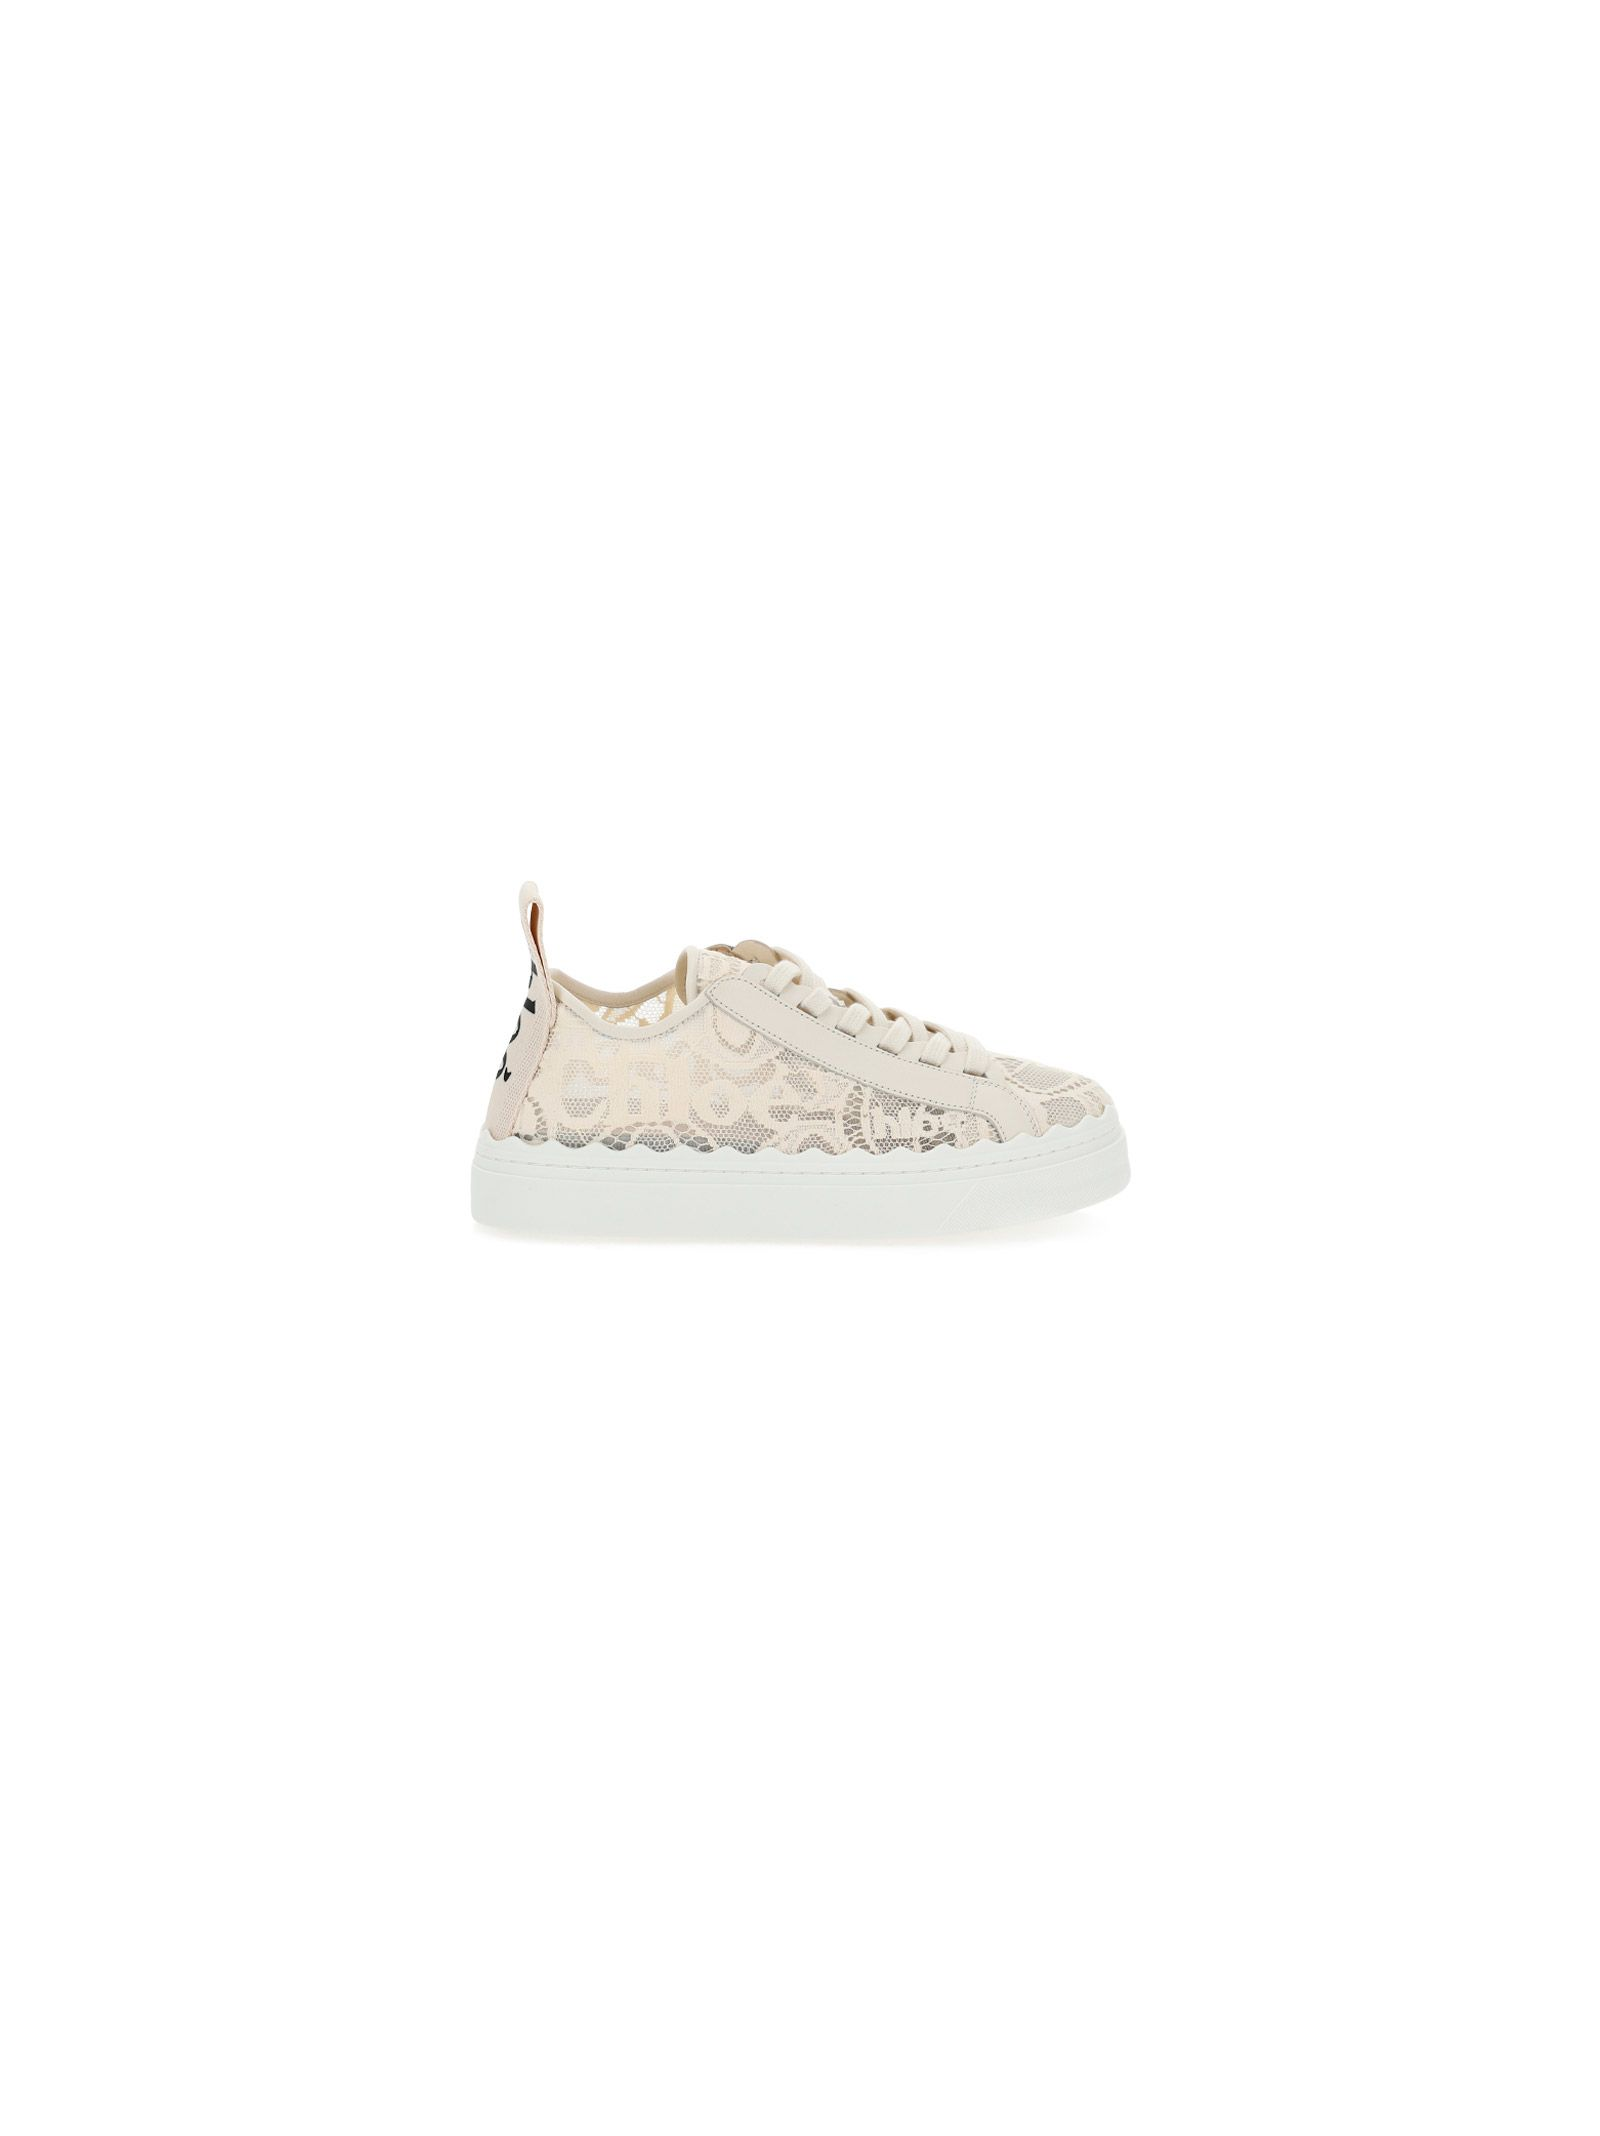 Chloé CHLO WOMEN'S CHC19U108D26J1 BEIGE OTHER MATERIALS SNEAKERS